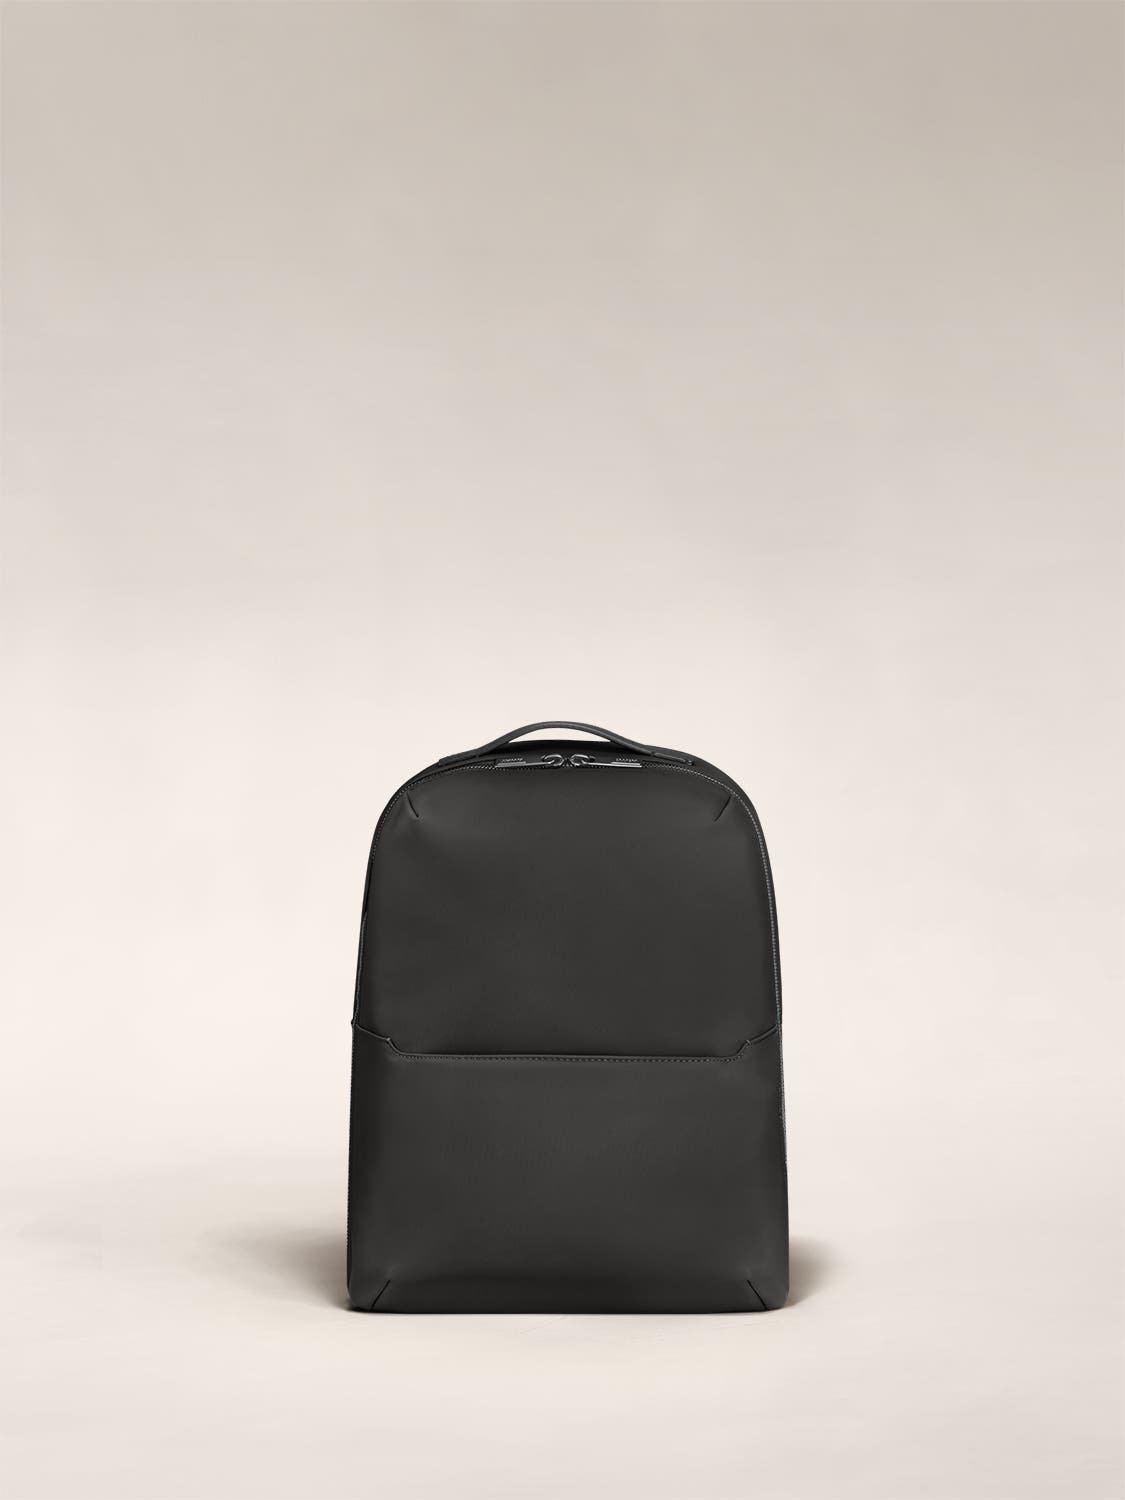 Small backpack in black with one small pocket in the front.